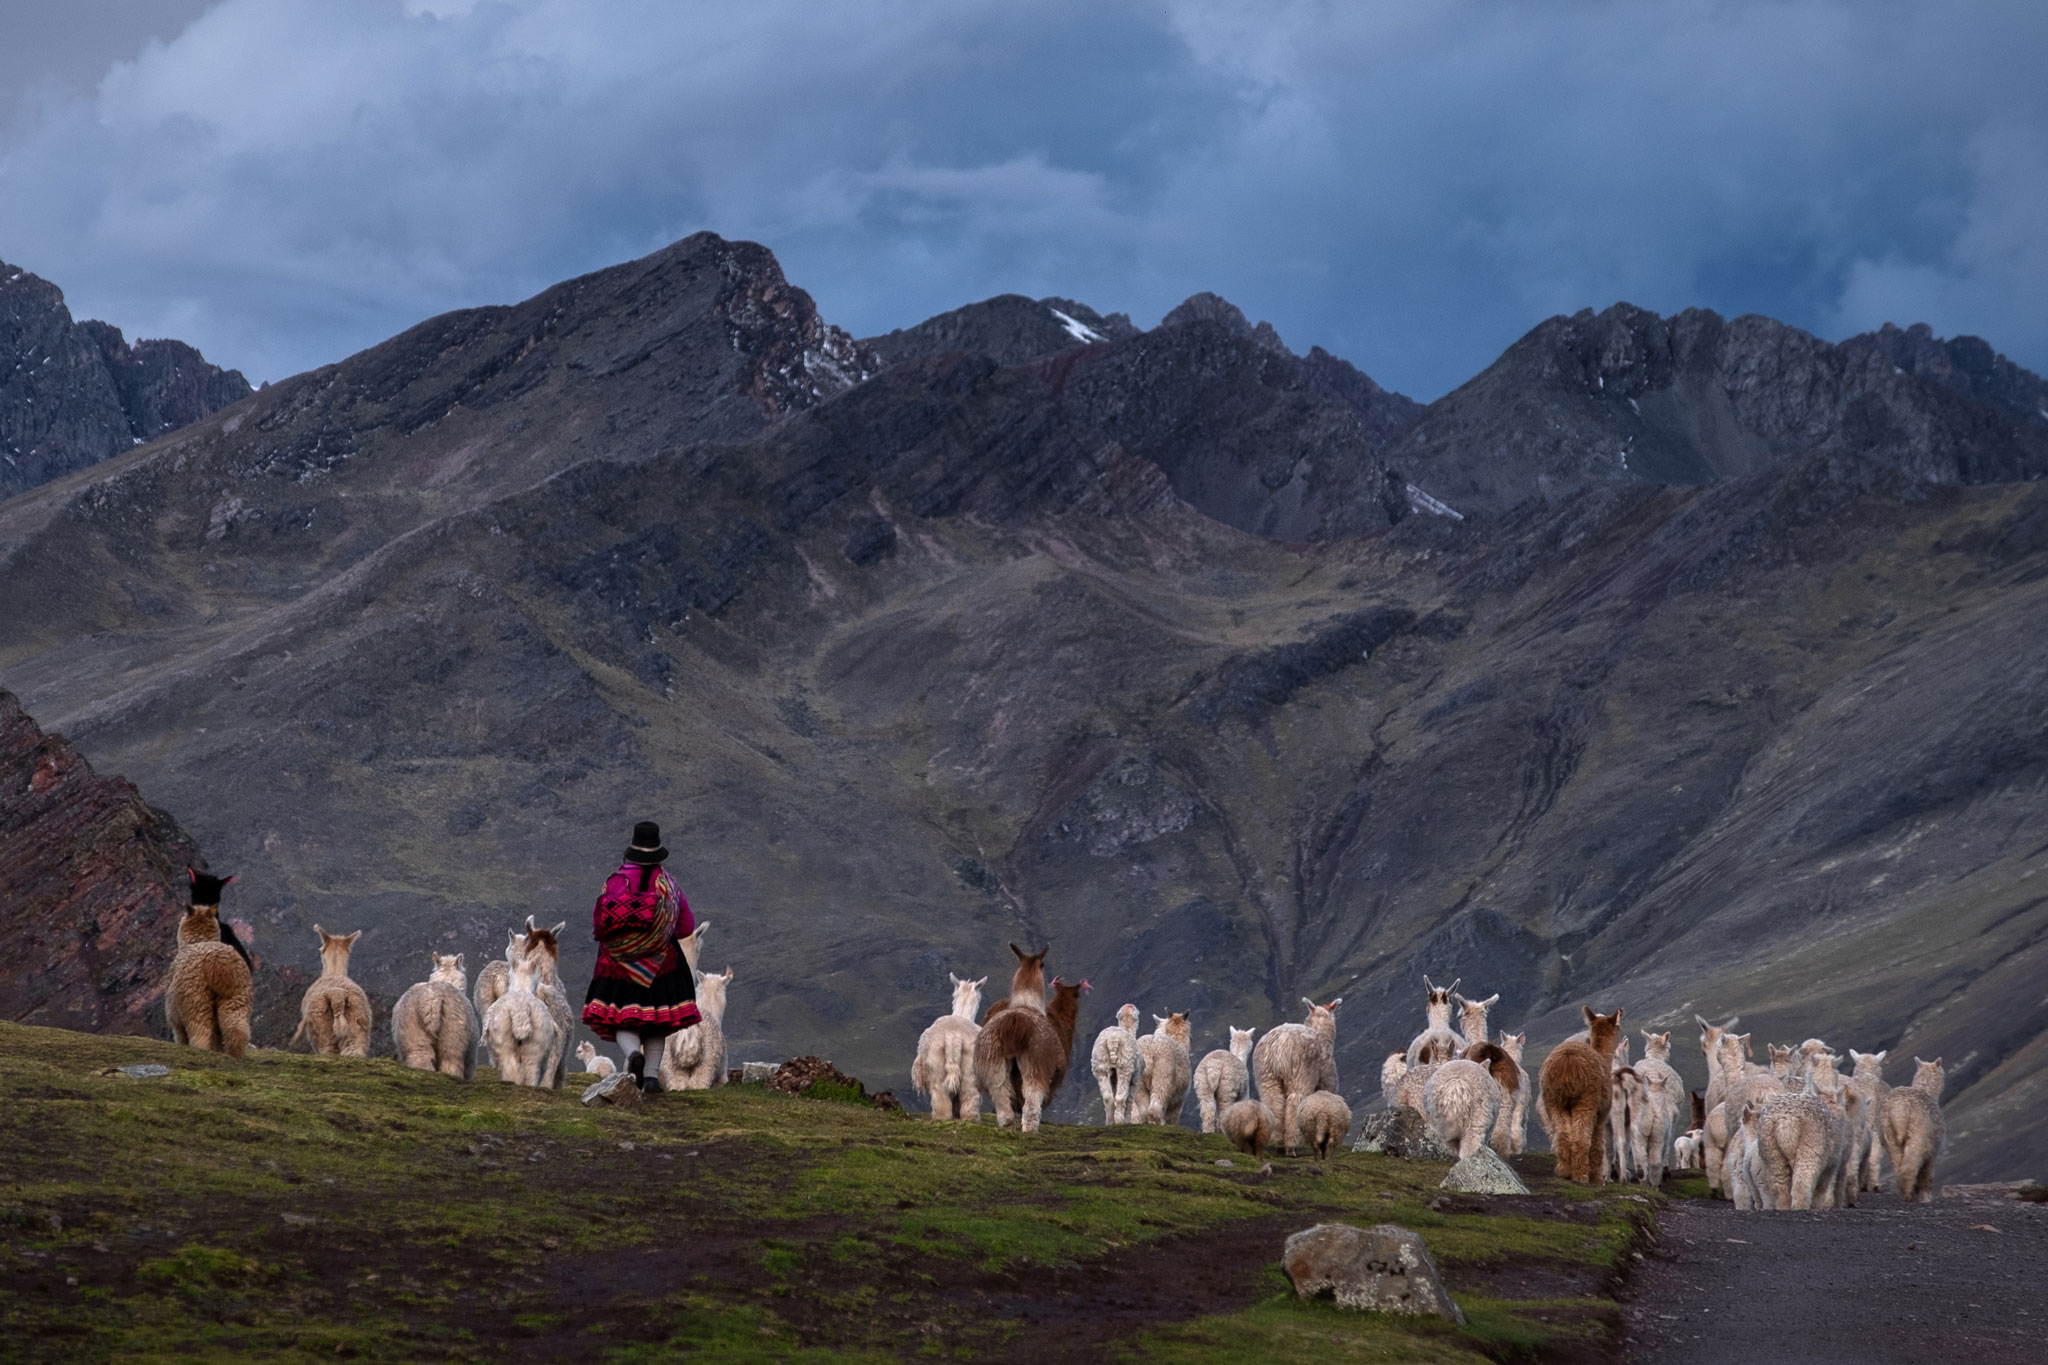 PERUVIAN LIFESTYLE IN THE ANDES